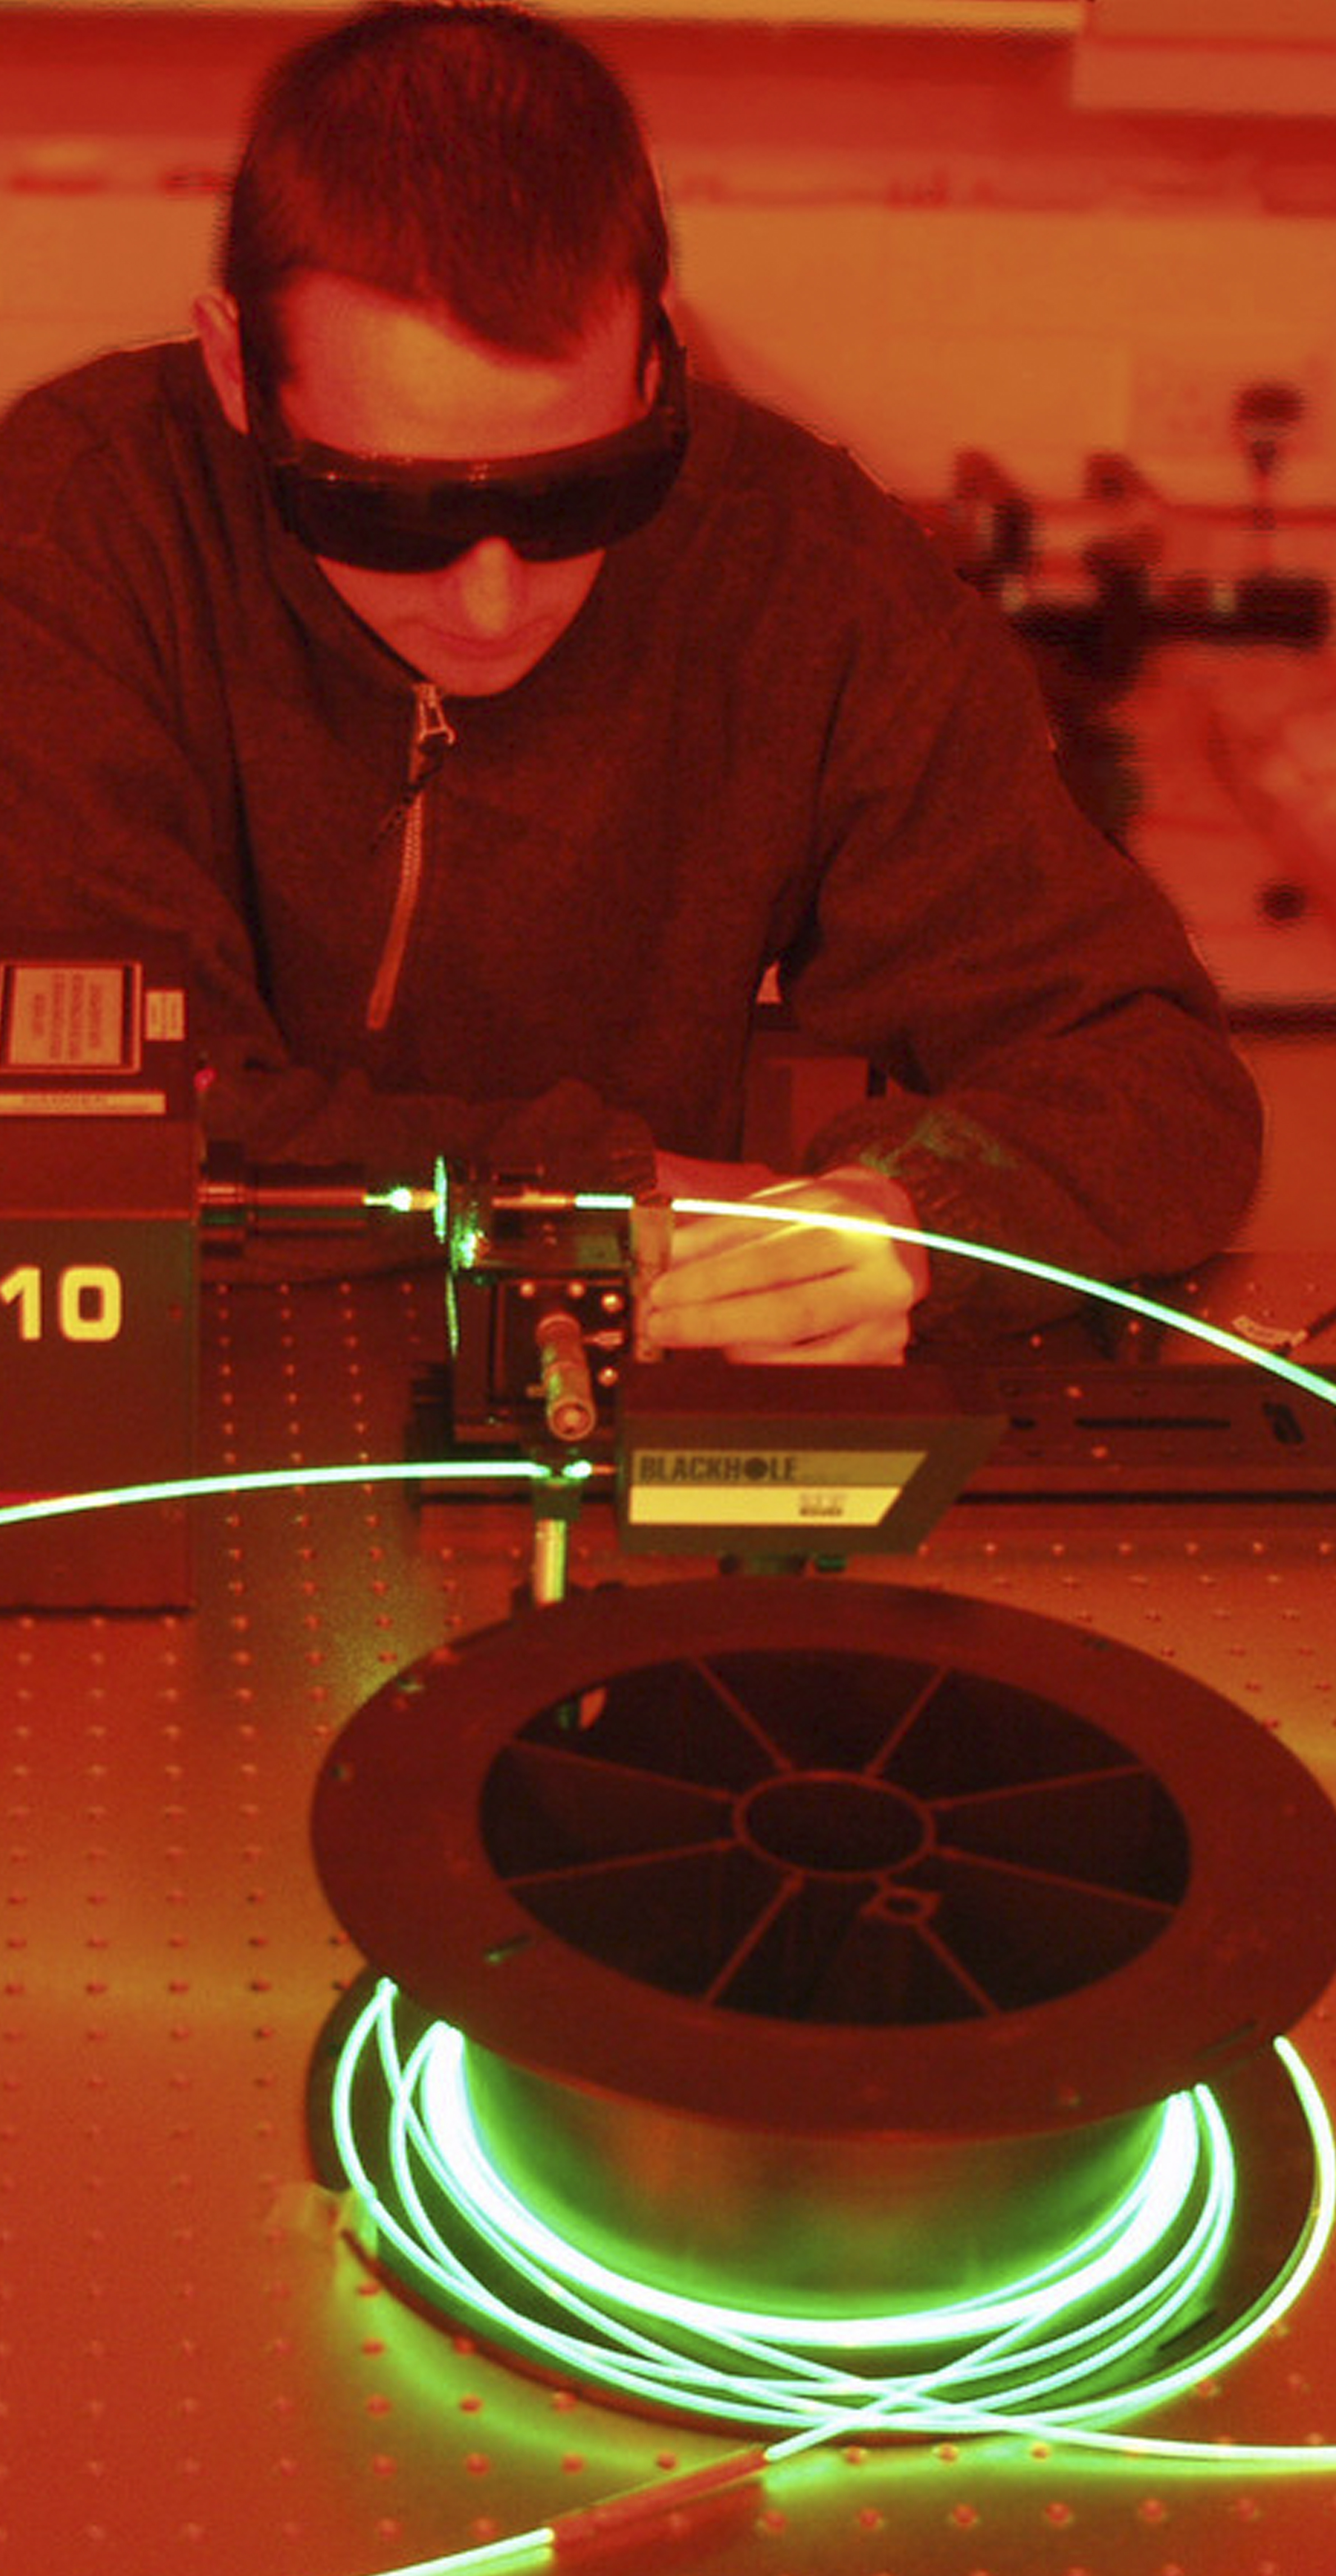 Student conducting a laser experiment in a darkened lab